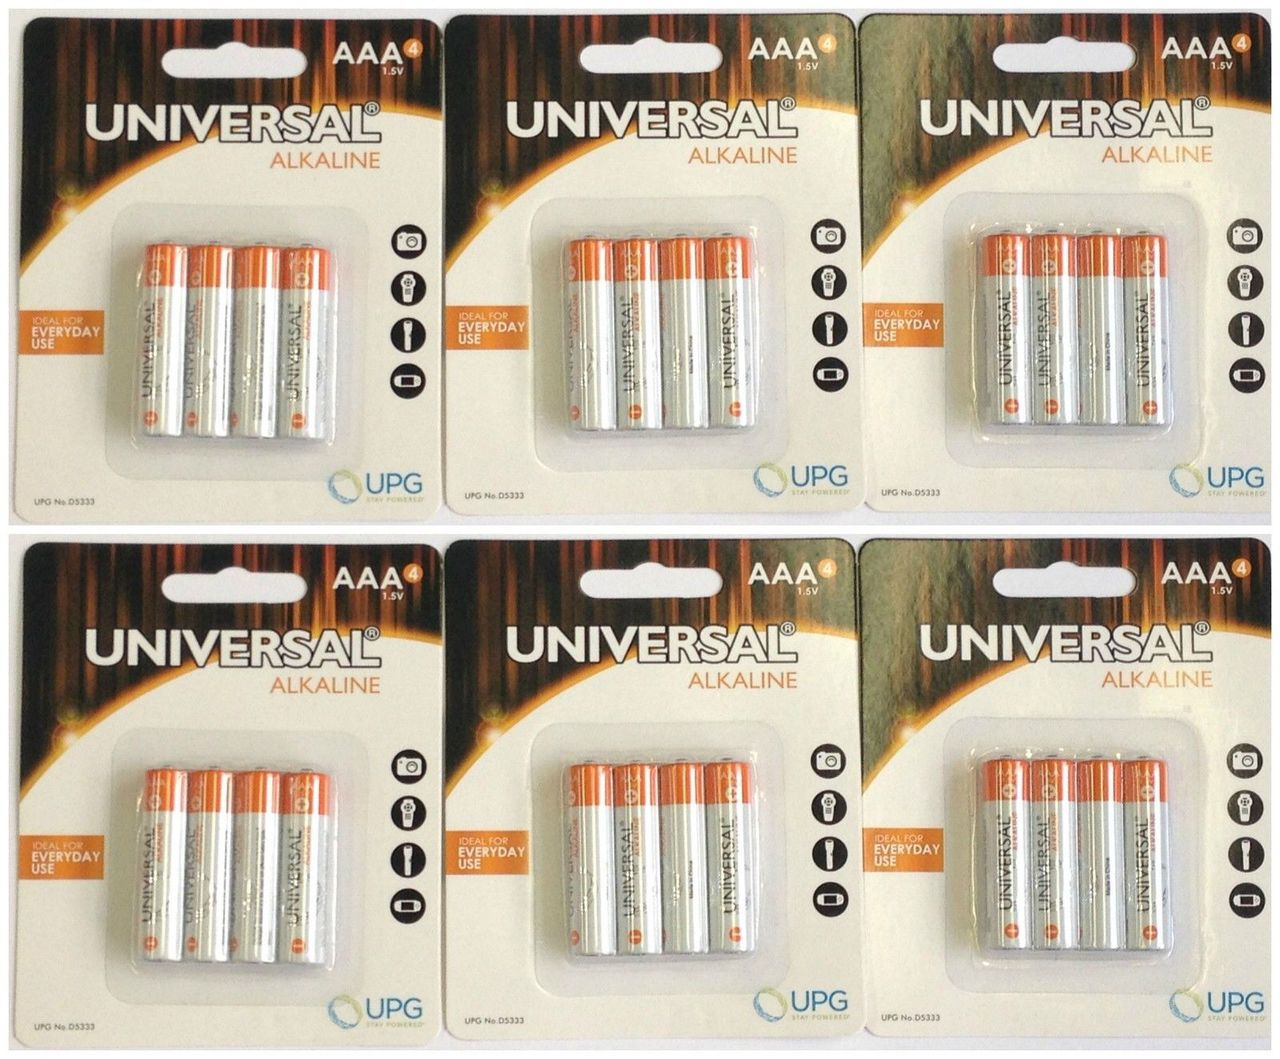 PACK OF 100 UNIVERSAL AAA - ALKALINE BATTERIES IN RETAIL PACKAGING + FREE SHIPPING